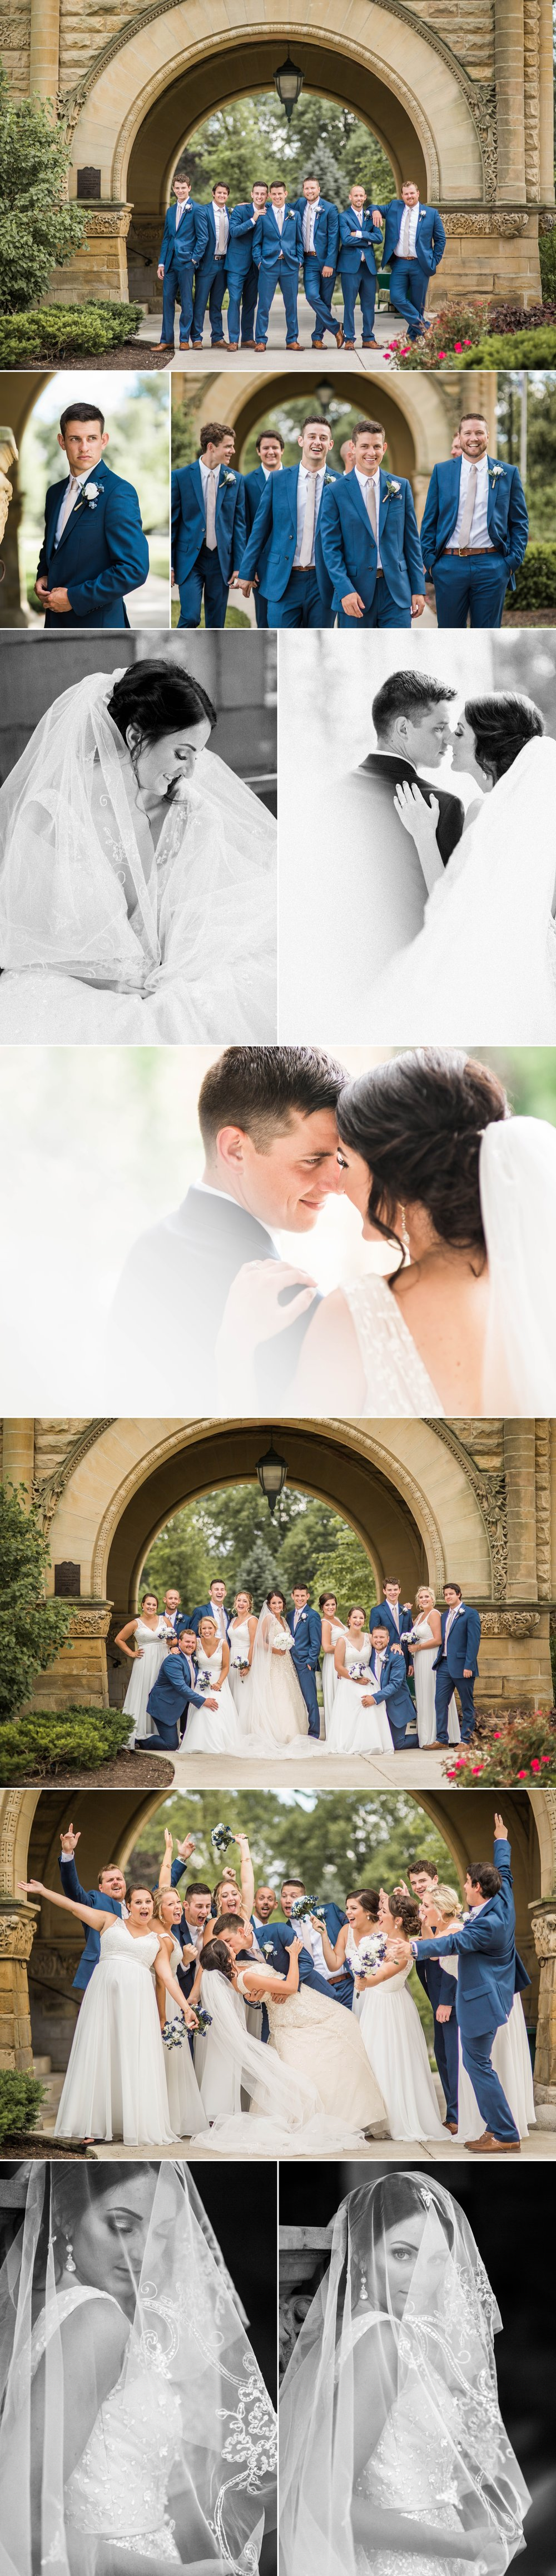 fort wayne - indiana - wedding - bridal details - midwest wedding - bride - groom -wedding day